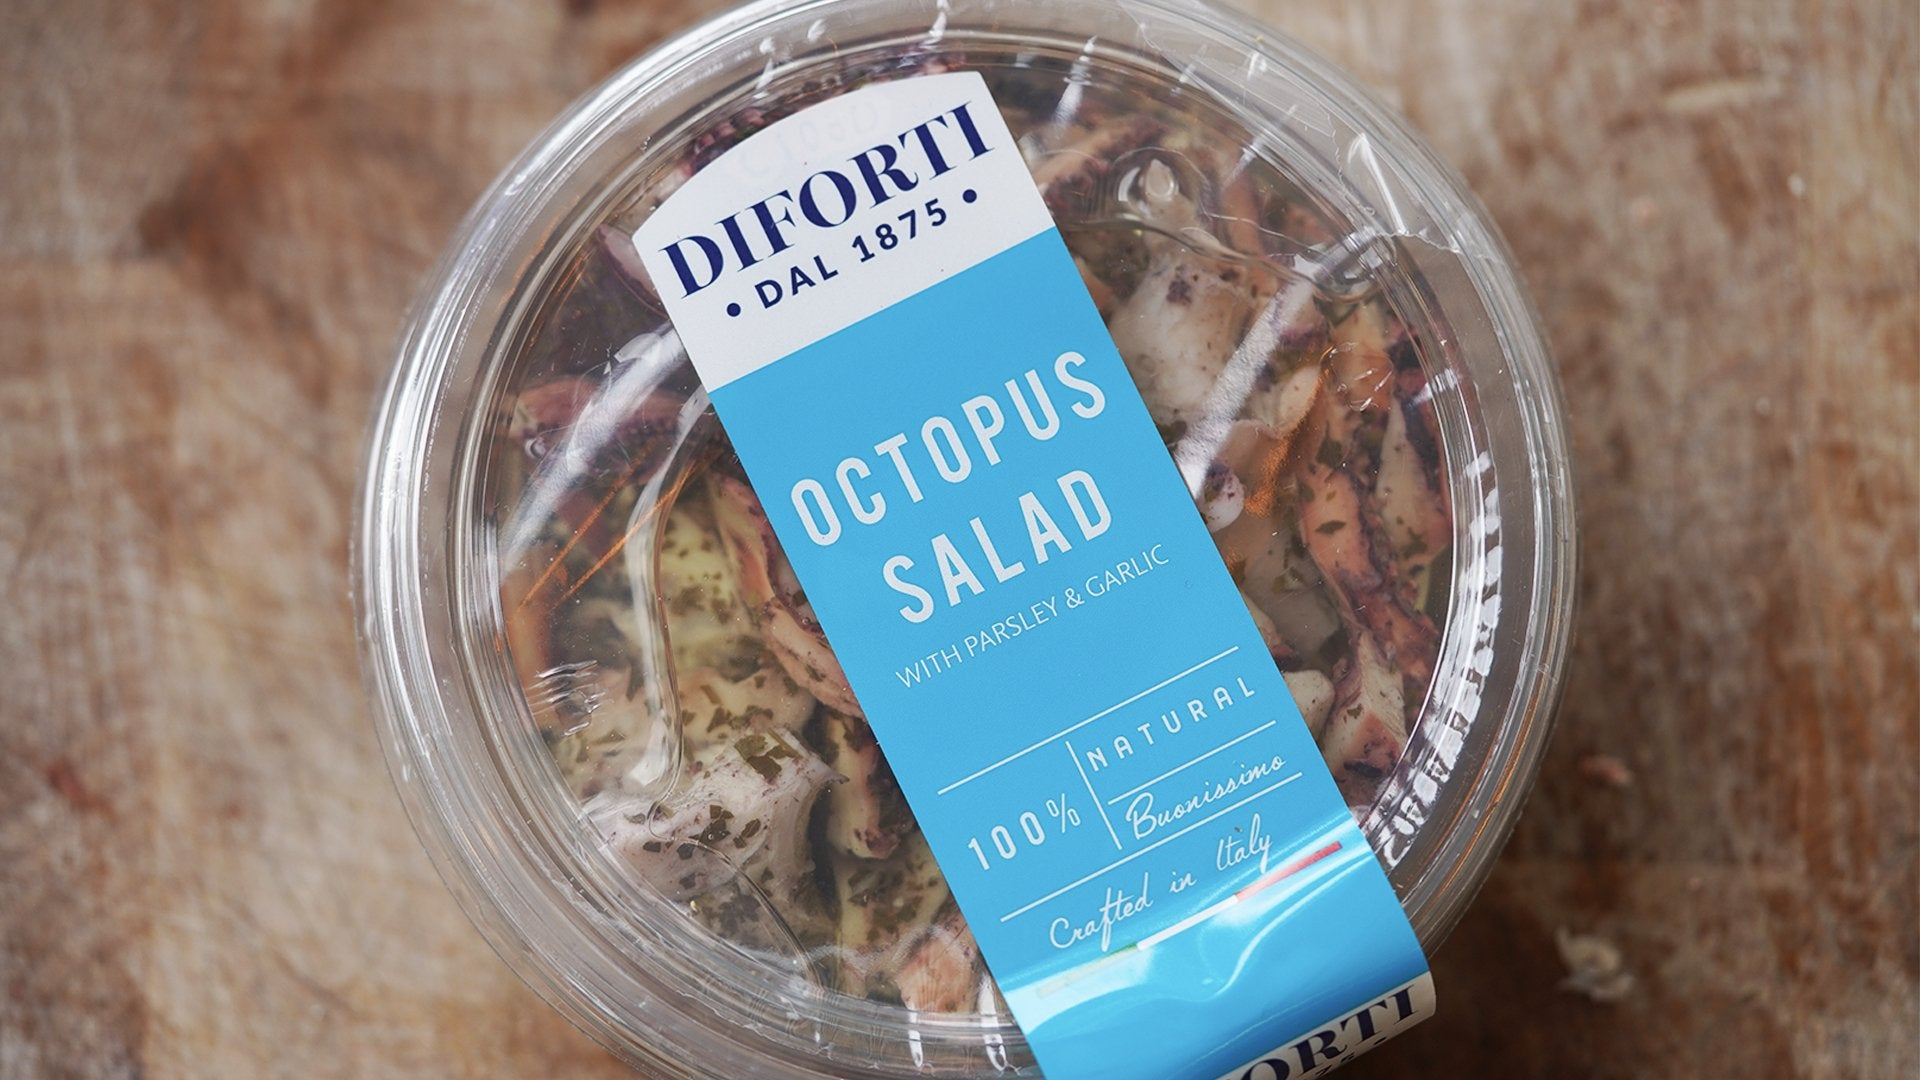 Diforti Octopus Salad